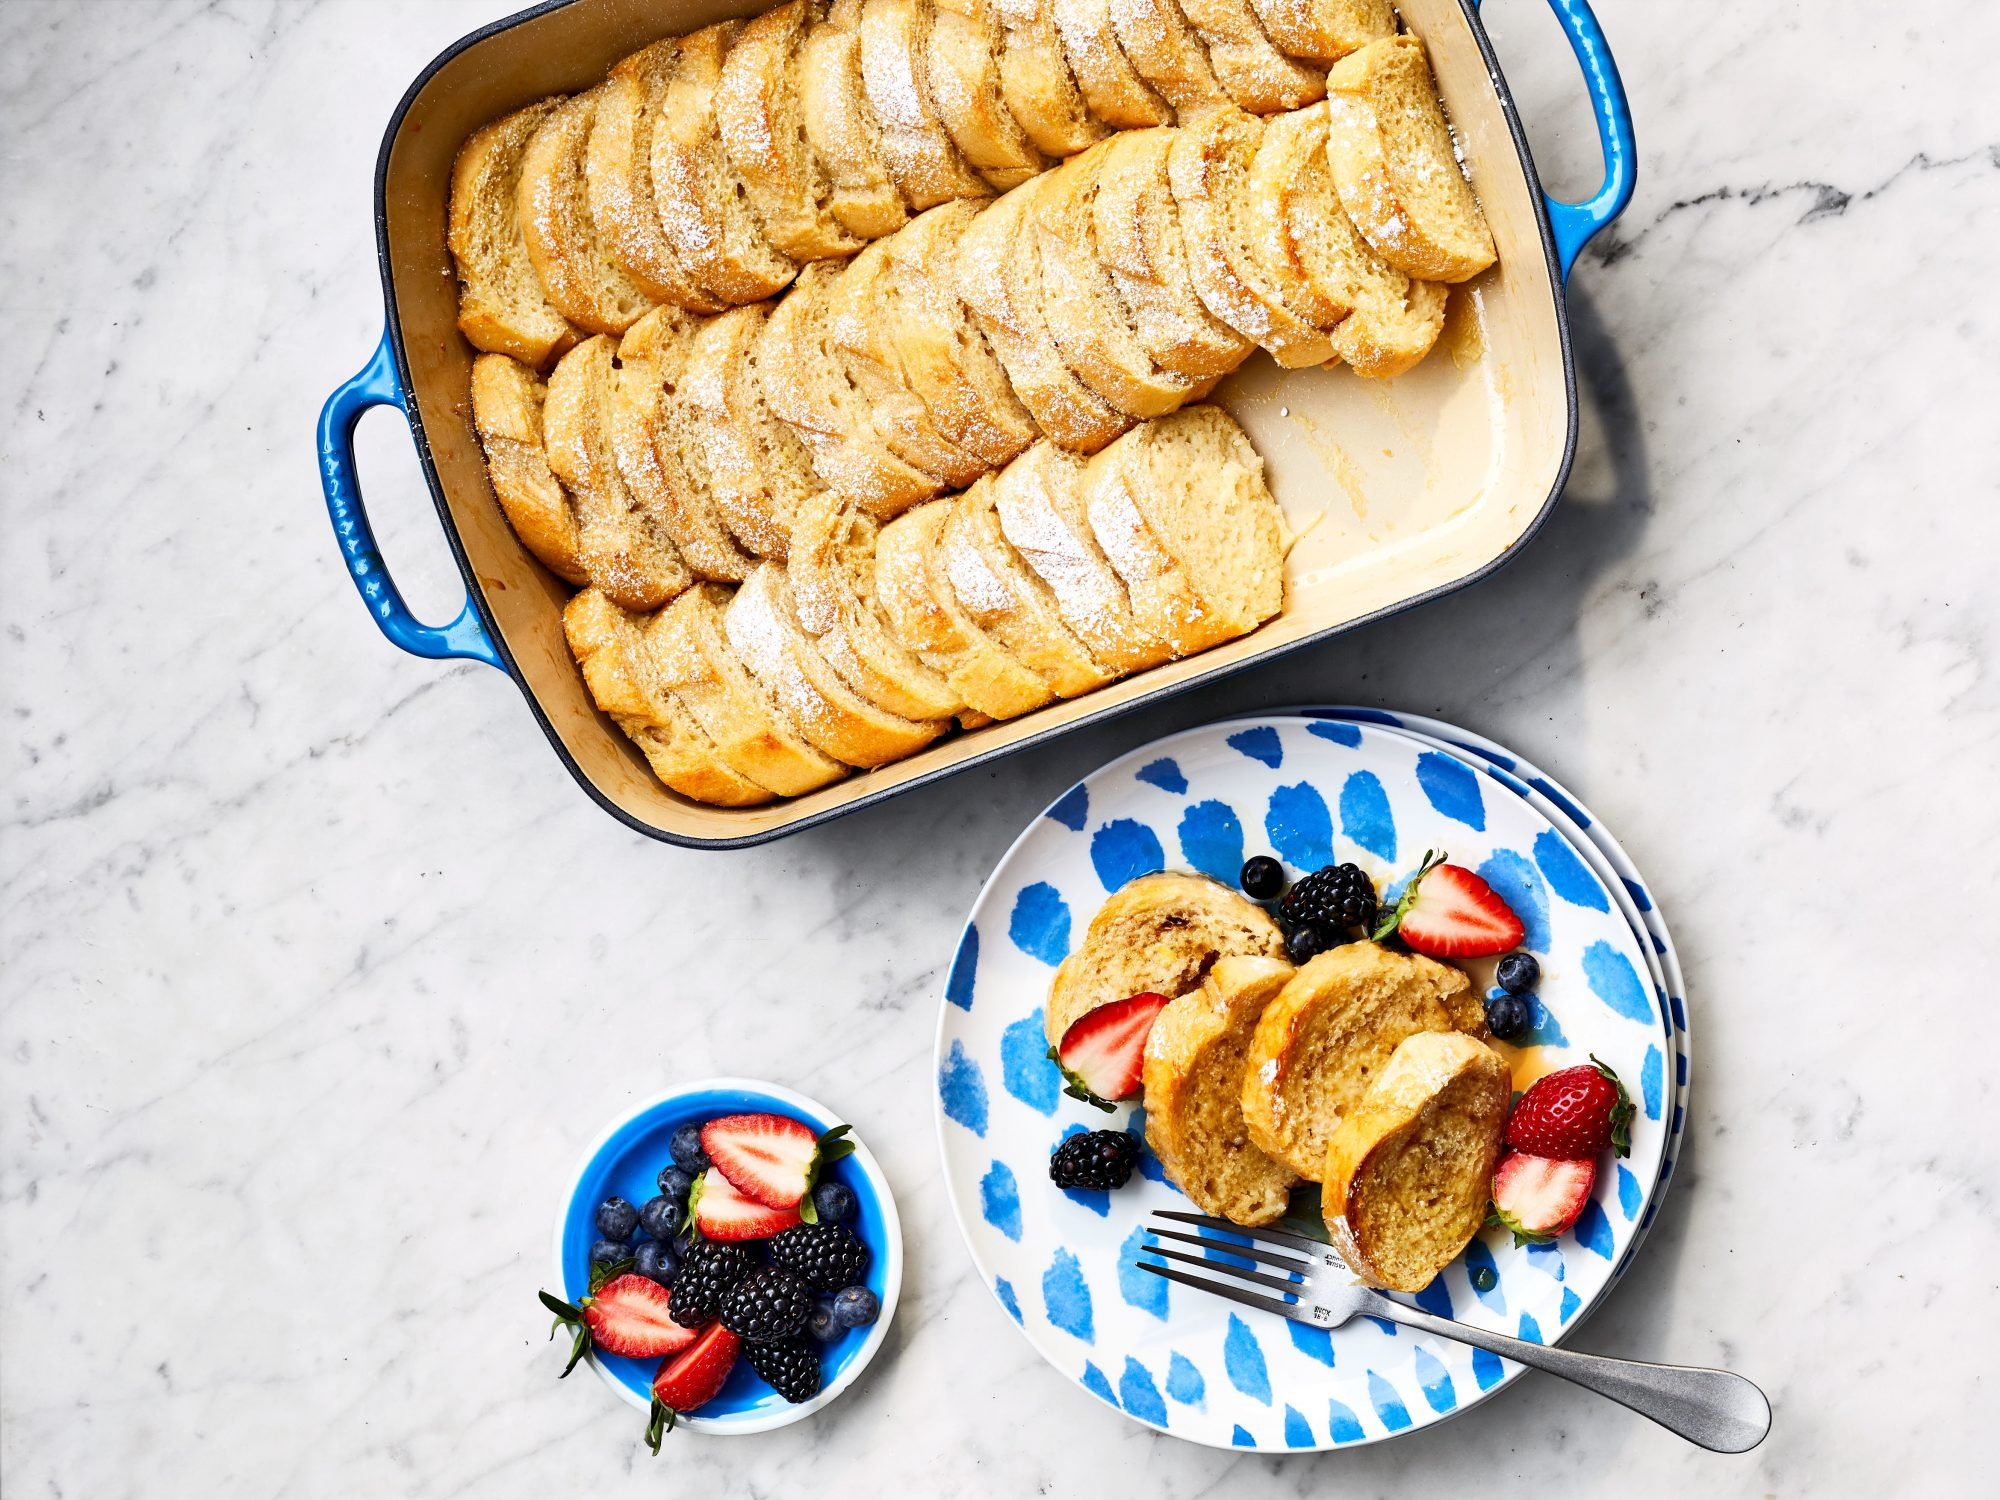 Baked Buttermilk French Toast